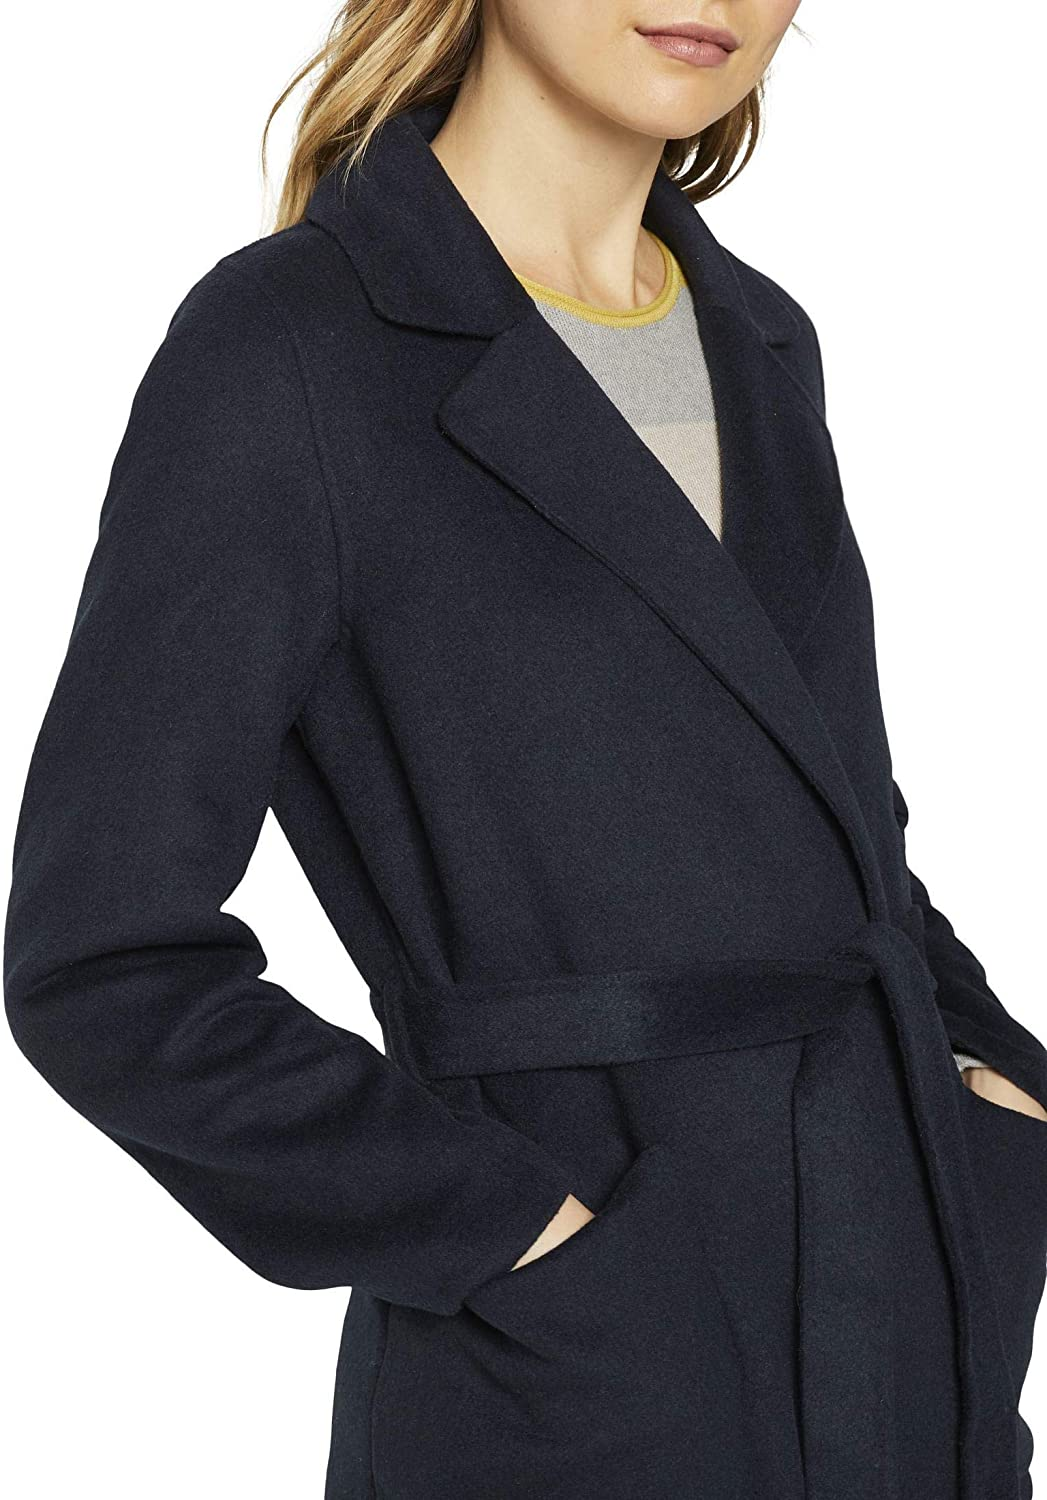 TOM TAILOR Damen Jacken Langer Mantel mit Bindegürtel Sky Captain Blue